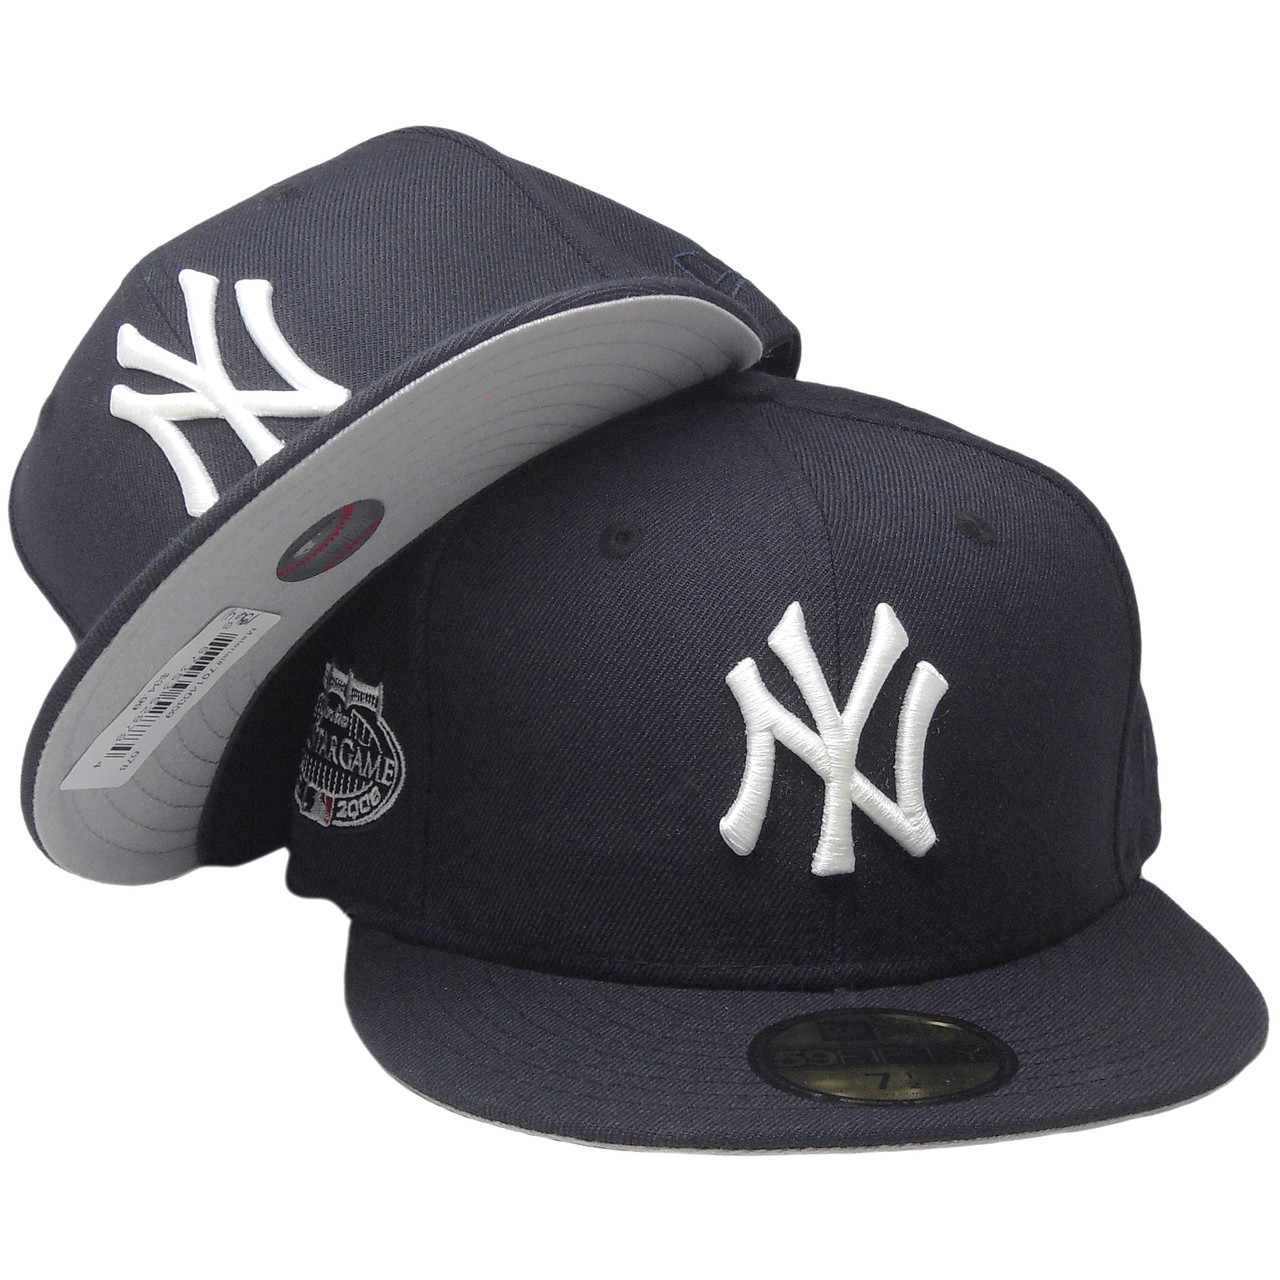 d9aa6eee New York Yankees New Era All Star Game 2008 Fitted Hat - Navy Blue, White -  ECapsUnlimited.com